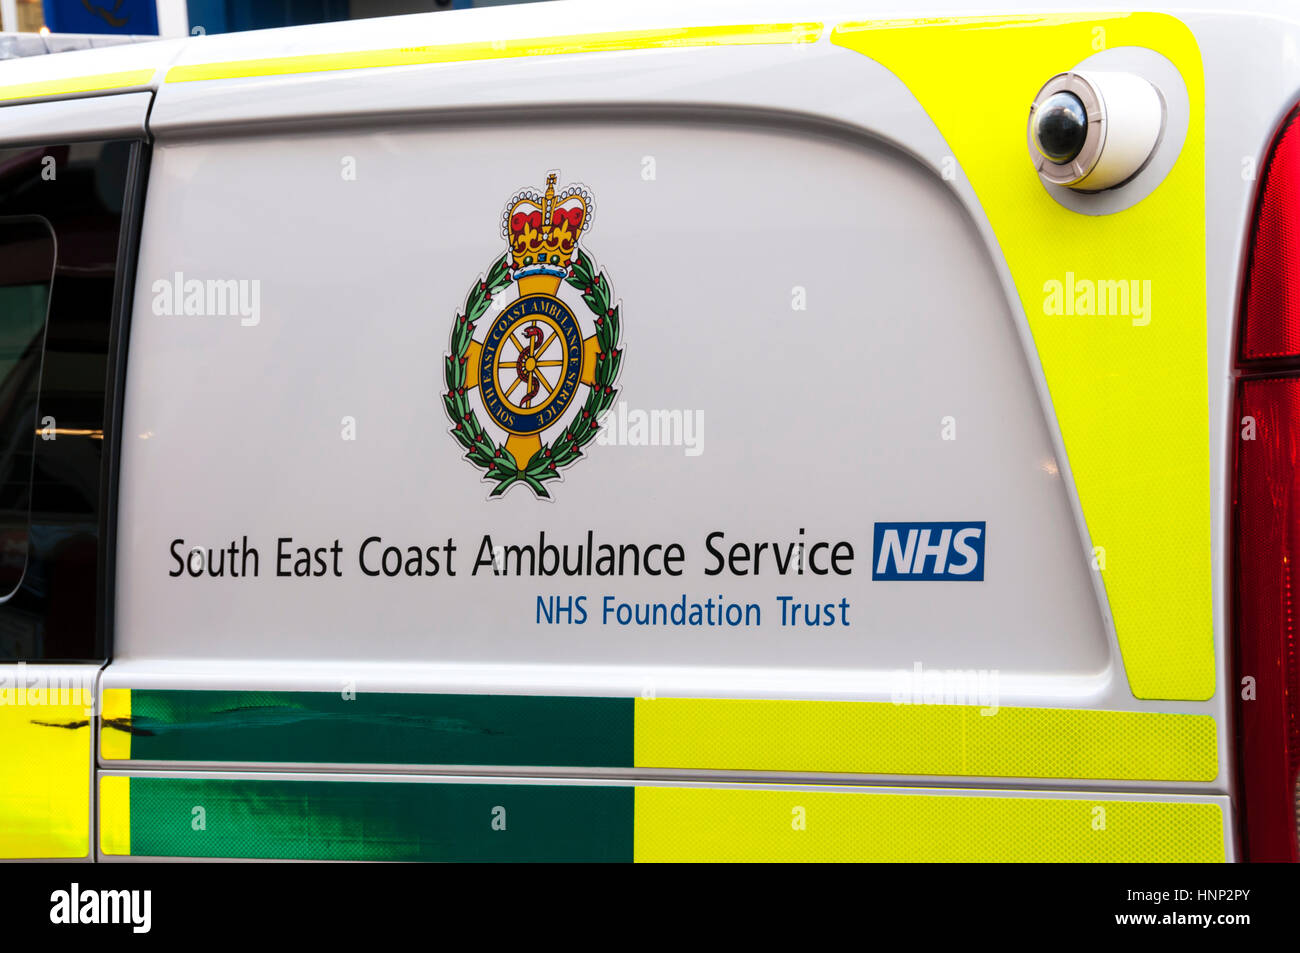 south east coast ambulance service stock photos south east coast logo and of south east coast ambulance service nhs foundation trust on the side of